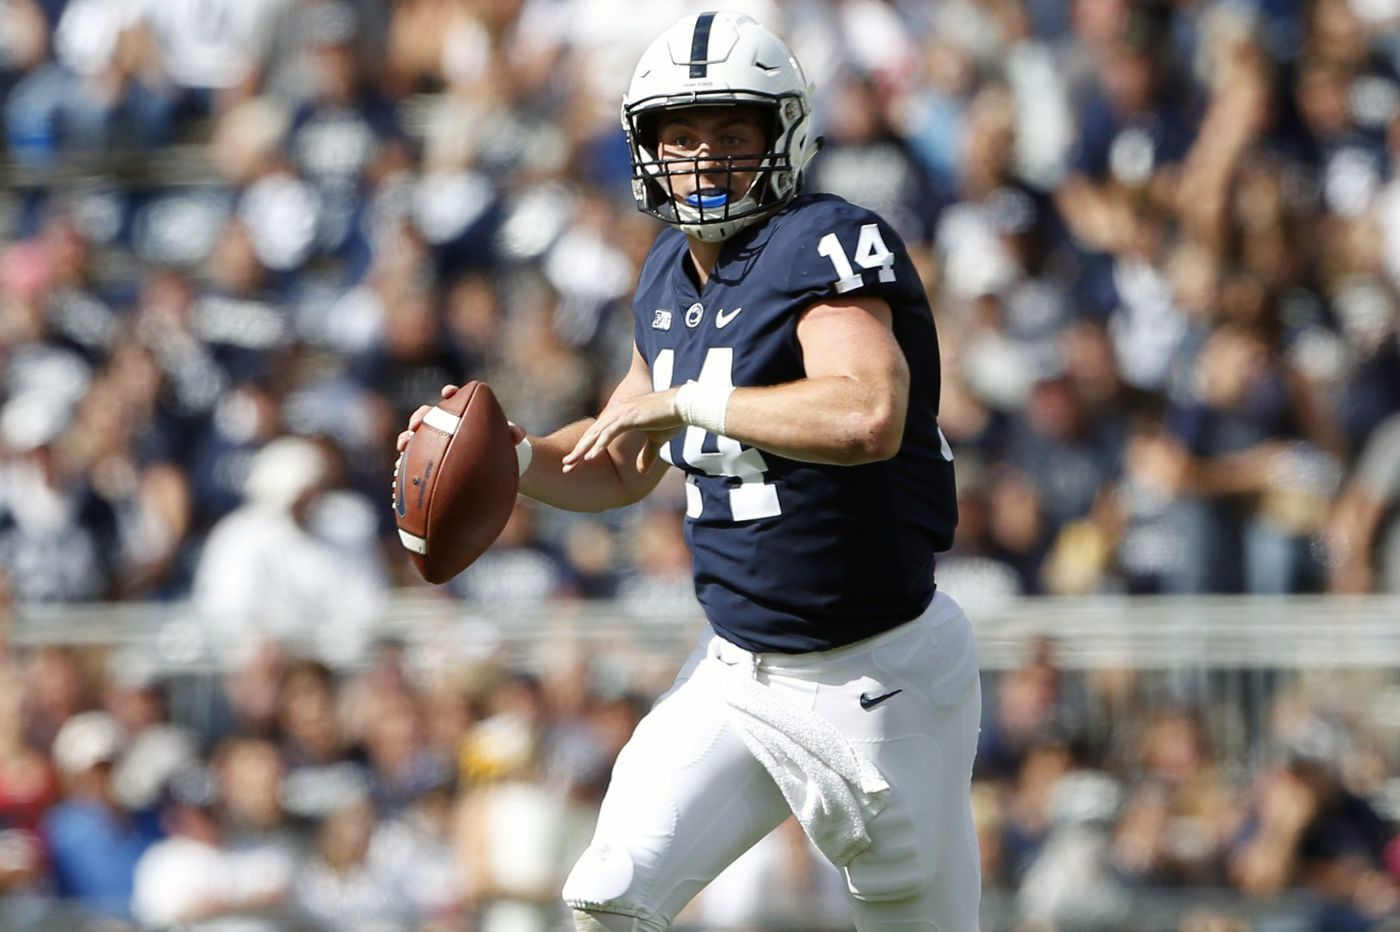 Backup quarterback Sean Clifford has been impressive for Penn State